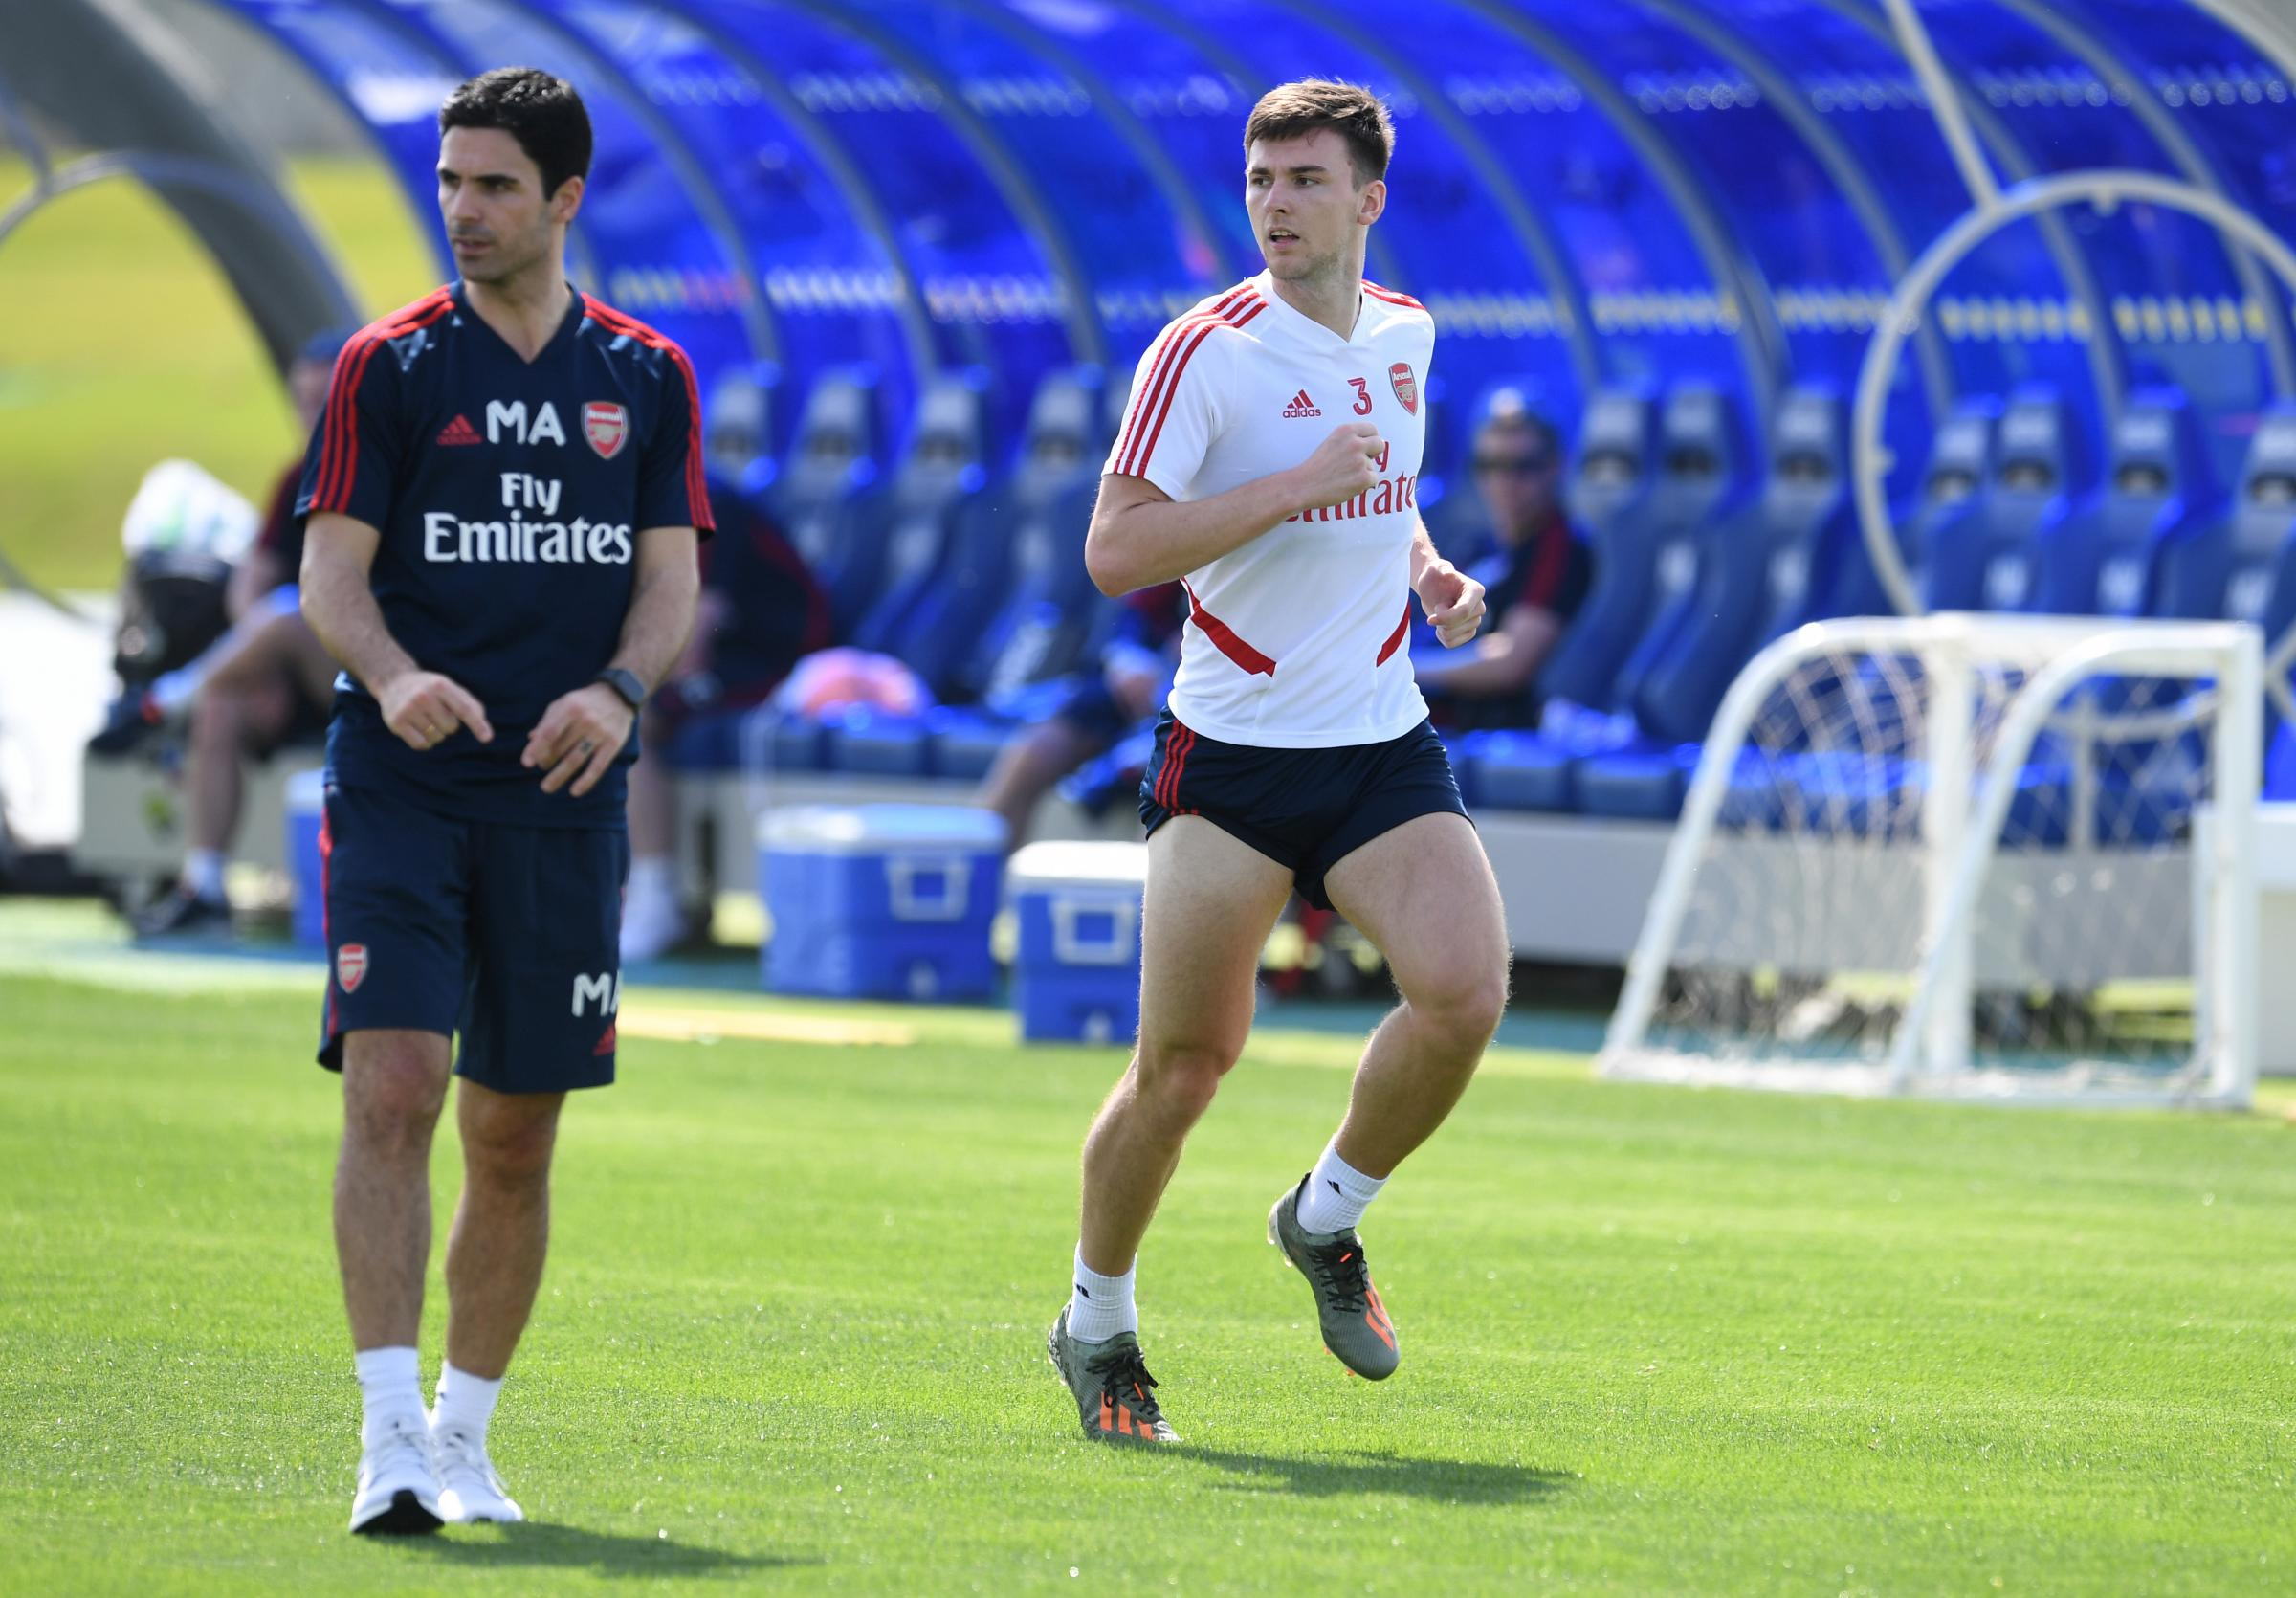 Kieran Tierney in full training with Arsenal and Mikel Arteta after shoulder injury